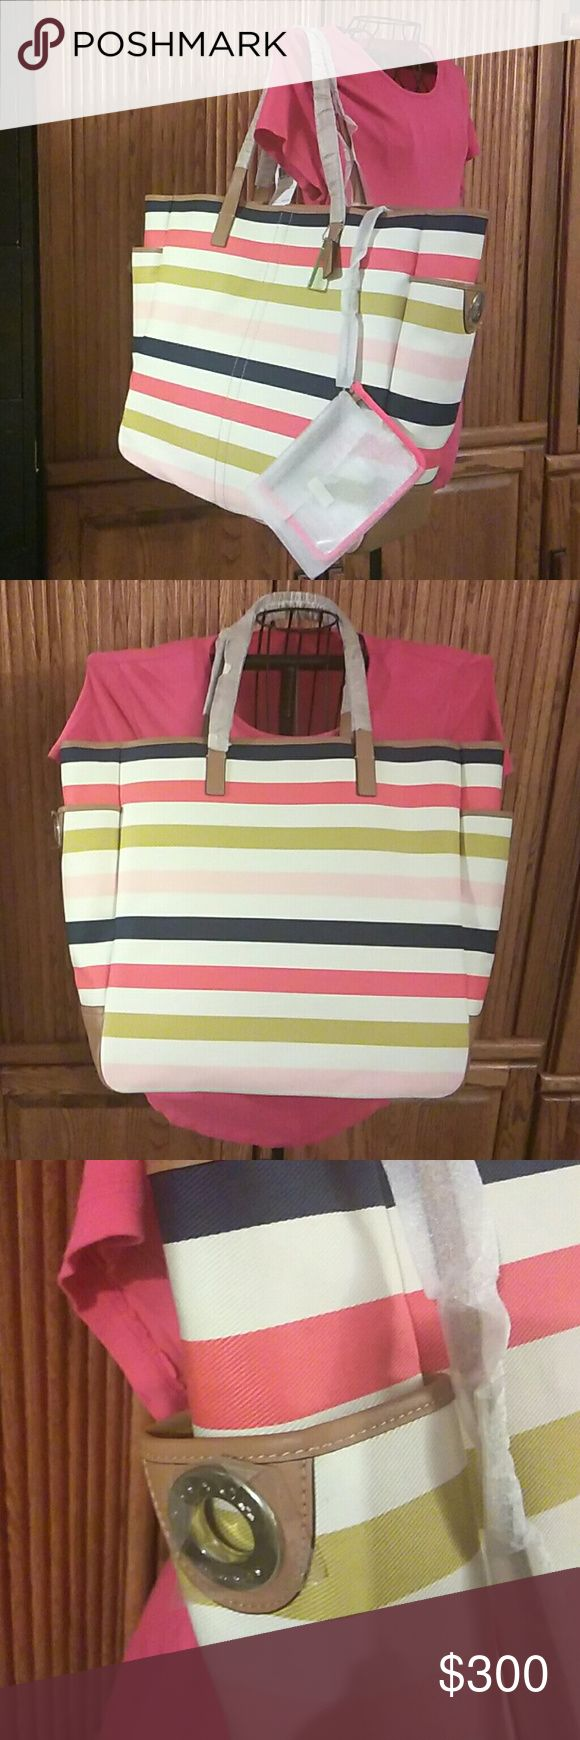 AUTHENTIC COACH MULTI STRIPE TOTE THIS MULTICOLORED STRIPE TOTE BAG HAS 2 DEEP POCKETS ON THE LEFT & RIGHT SIDE OF THE BAG! BOTH POCKETS ALSO HAS SILVER HARDWARE  ON EACH POCKET WITH ORIGINAL HANG TAGS! THIS IS A VERY SPACIOUS BAG WITH ONE ZIPPERED POCKET! TOP OF BAG HAS A DOG LEASH CLOSURE...NWT Coach Bags Totes